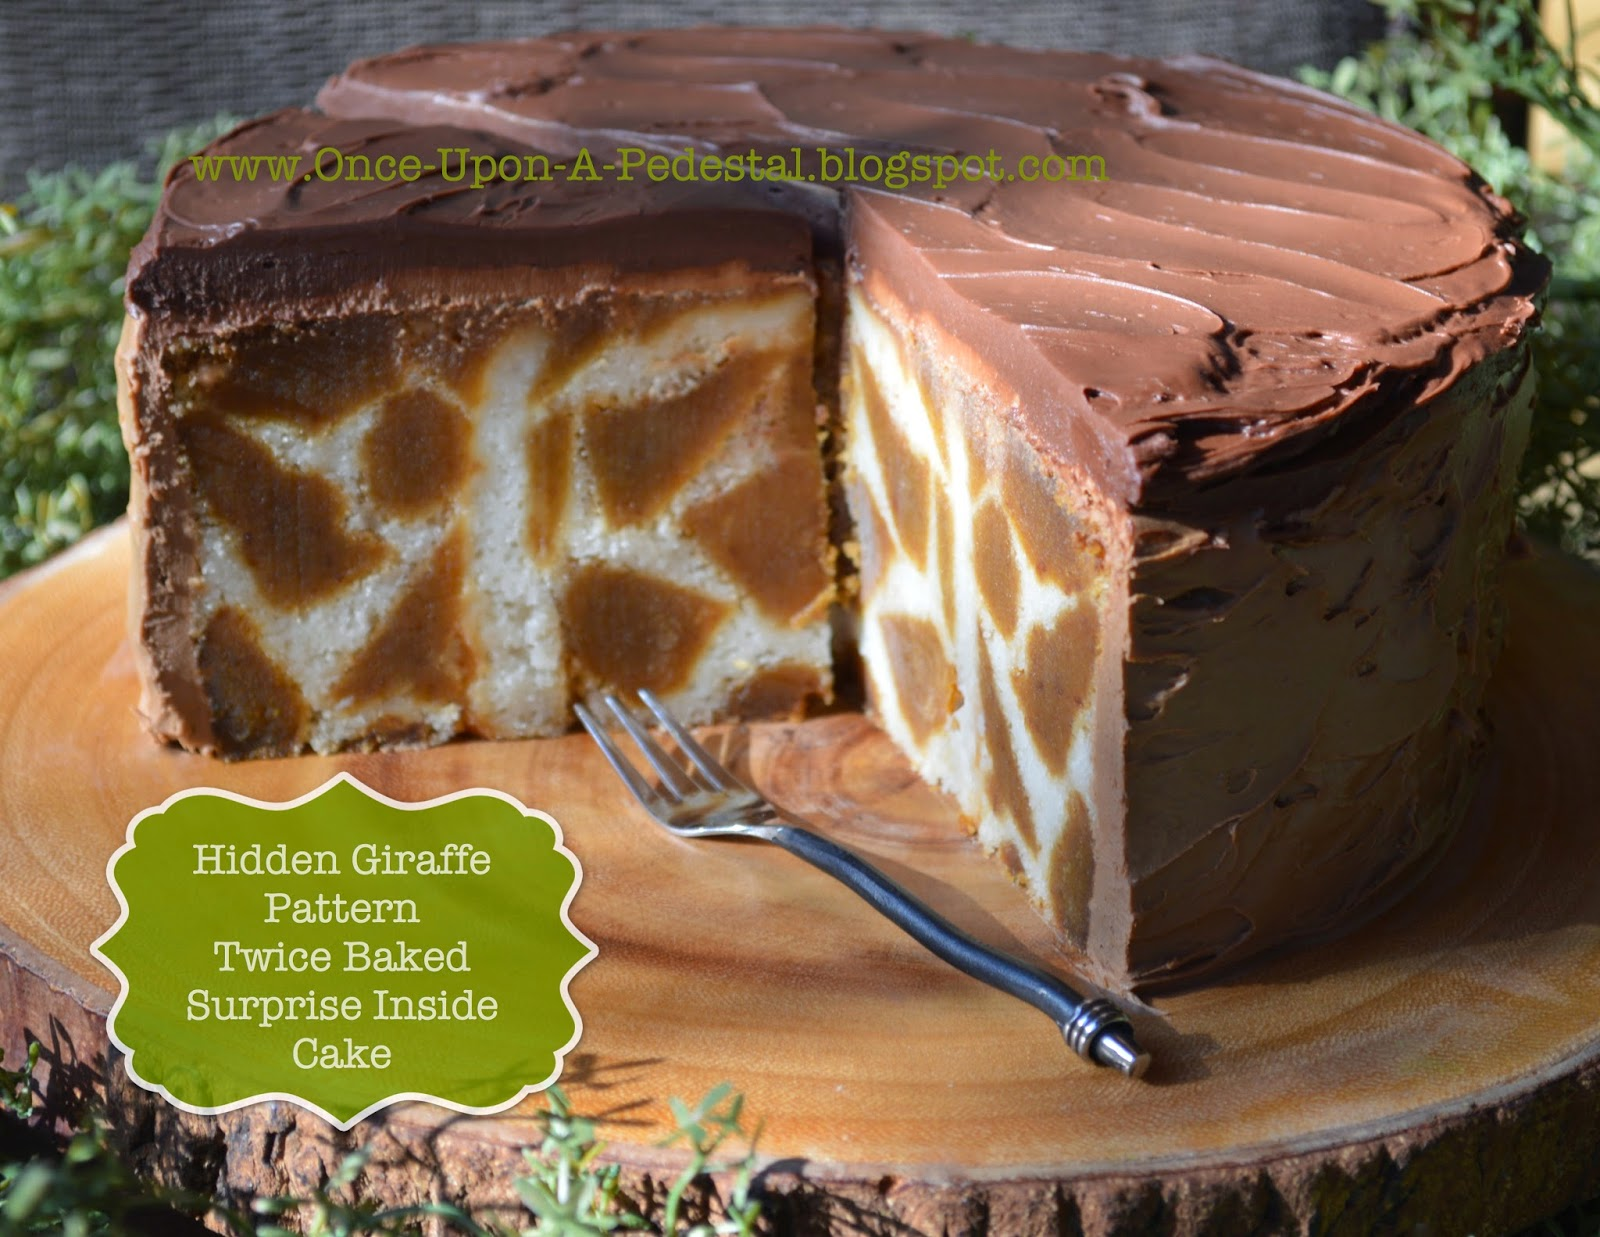 giraffe-cake-surprise-inside-animal-pattern-deborah-stauch